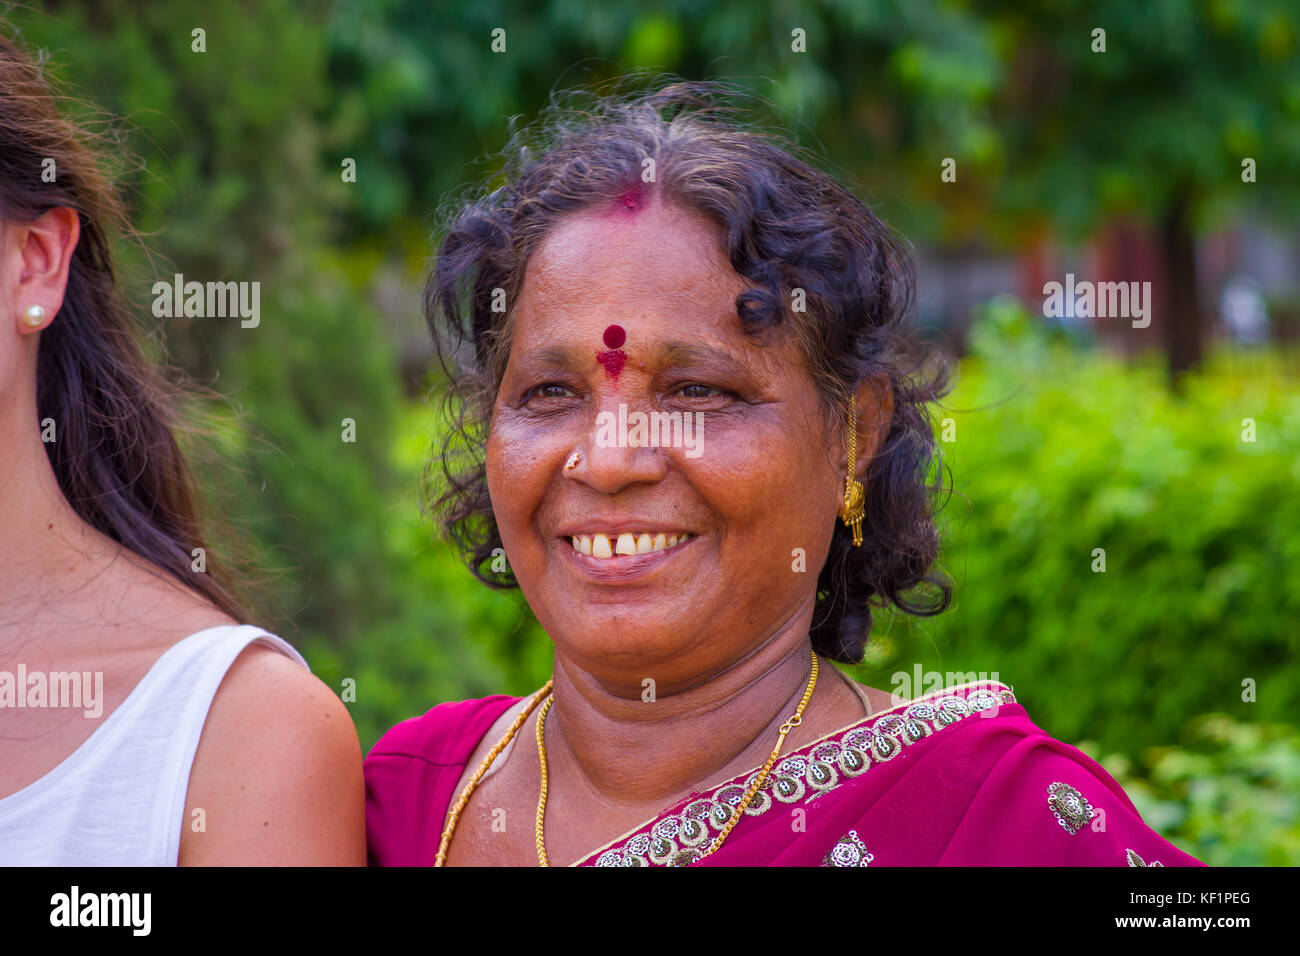 hindu single women in center point Bindis: why do indians wear a red dot on their forehead or to be more precise by hindu women why do indians wear a red dot on their forehead.